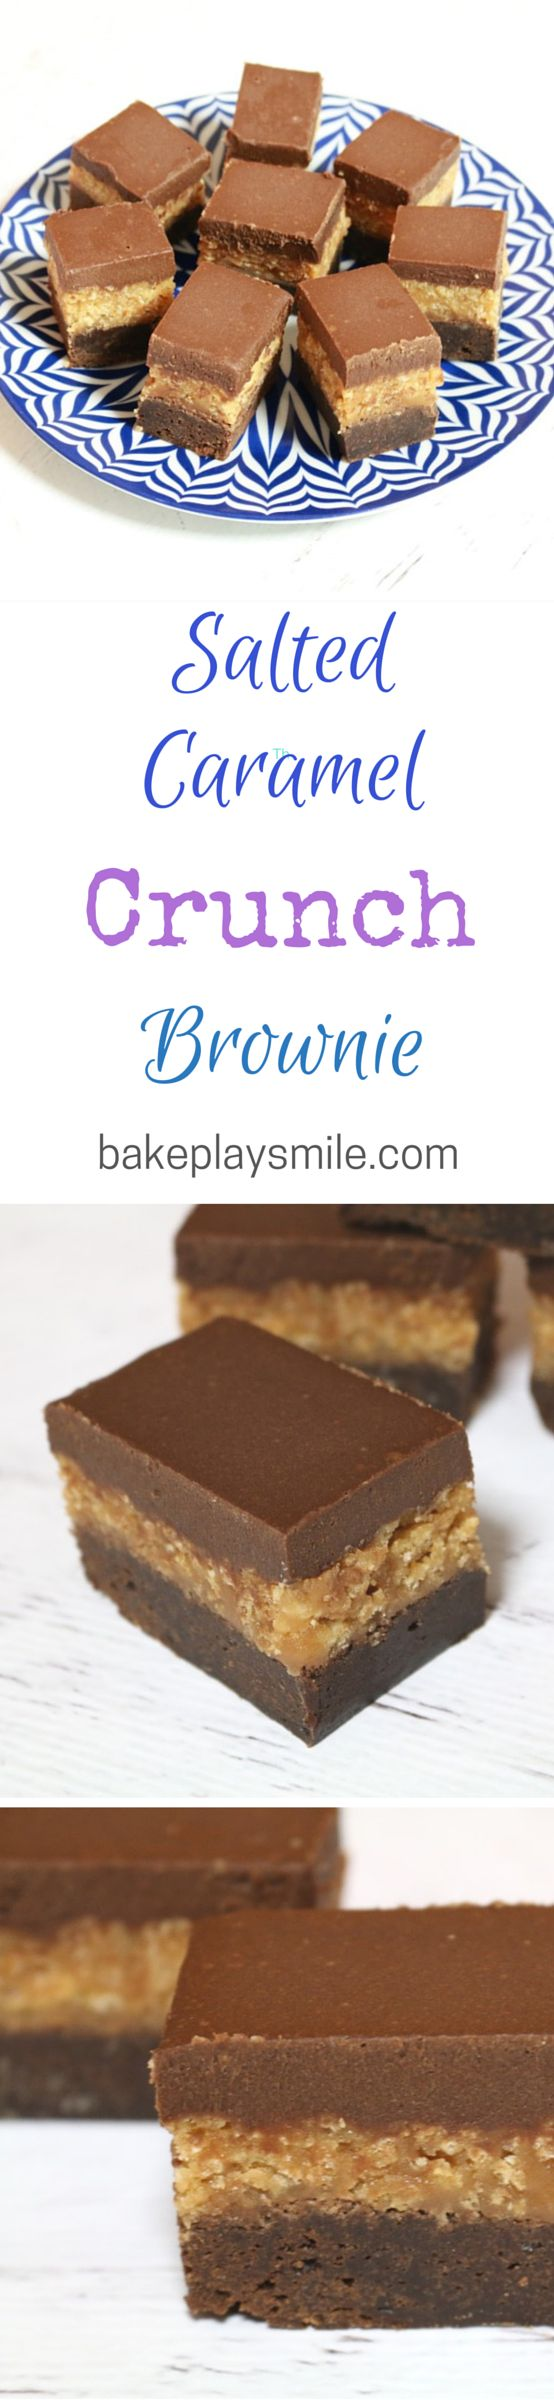 This triple layer Salted Caramel Crunch Brownie is incredible!! A rich chocolate brownie bottom, with a crunchy salted caramel filling and a beautiful chocolate ganache topping. Yum!